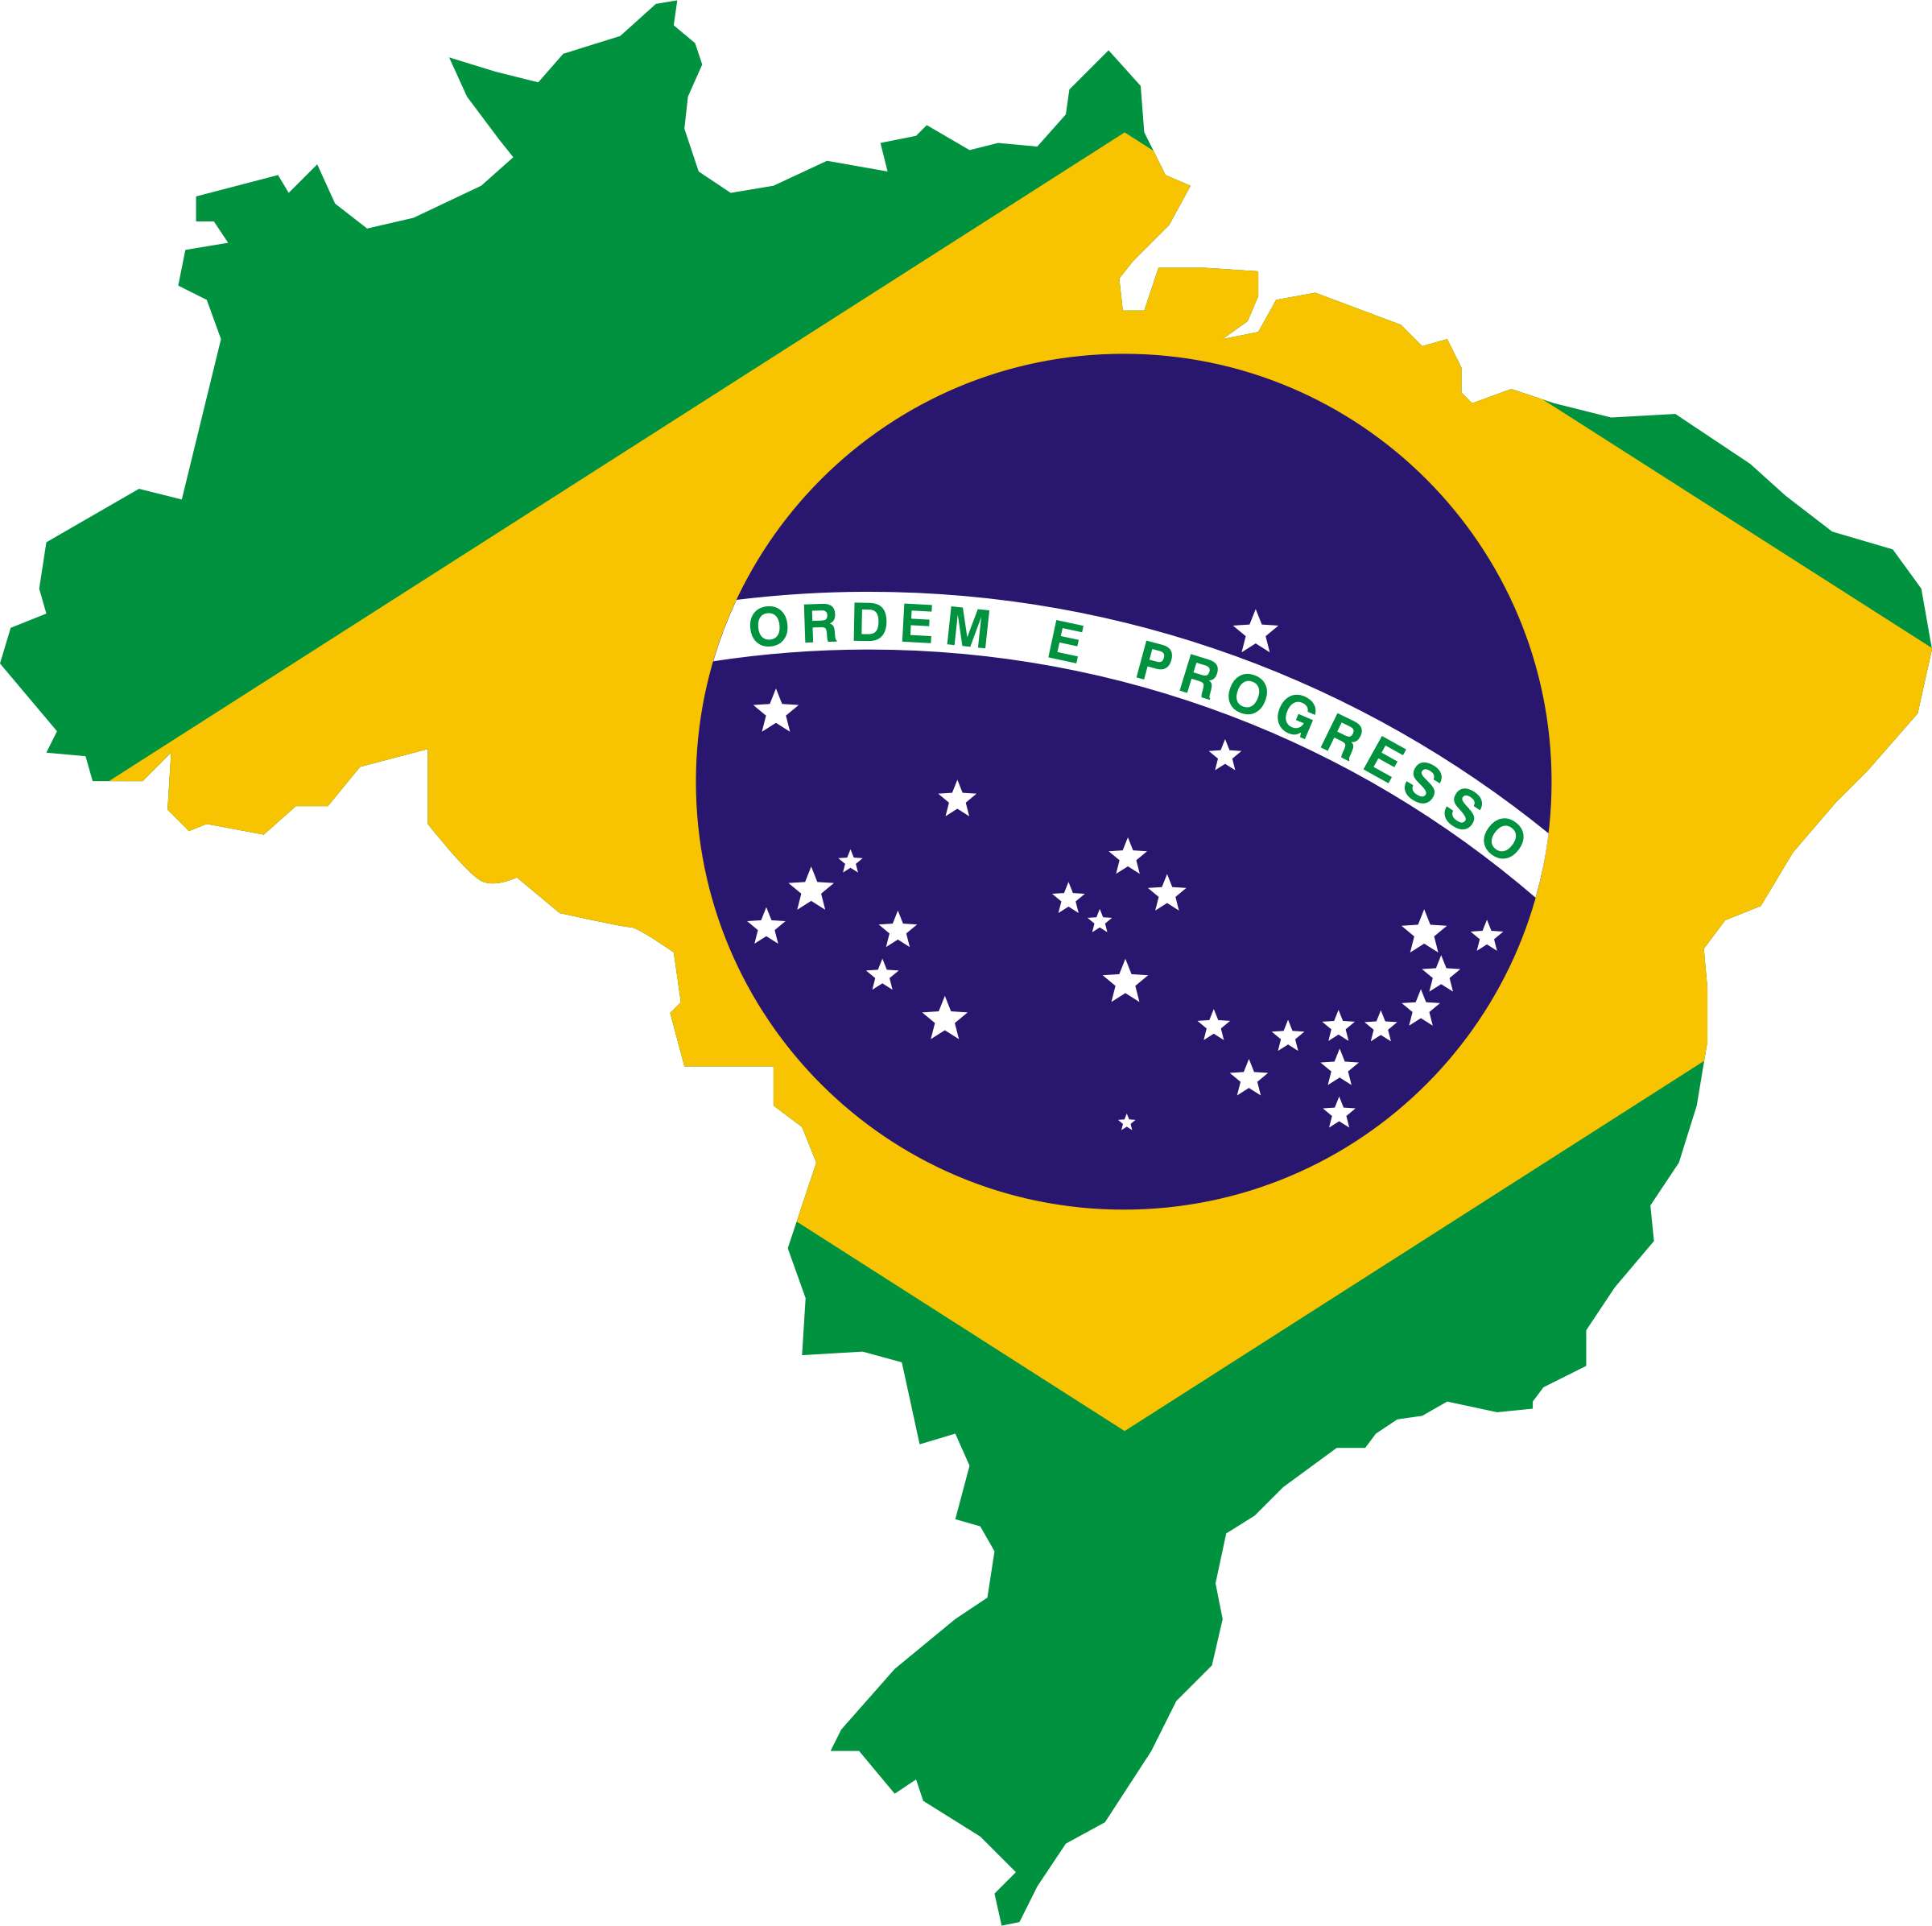 Brazil39;s elites, who control the Congress, did everything they could